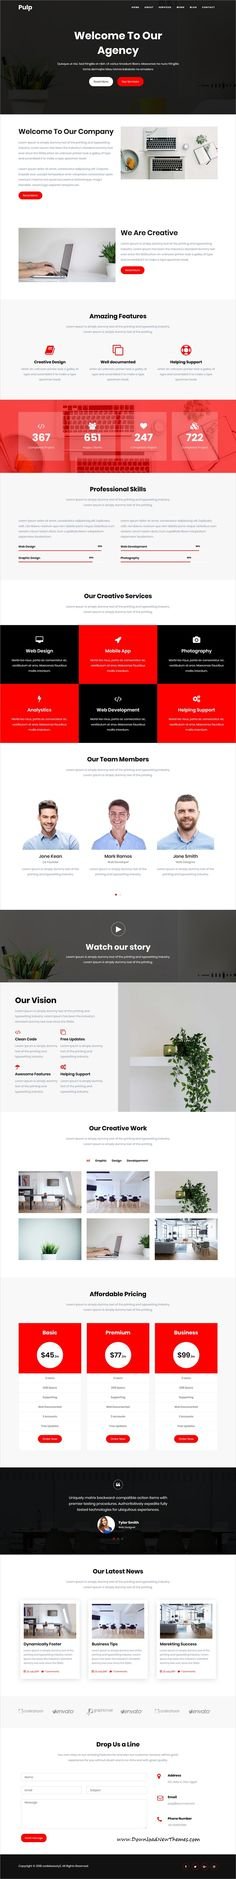 Pulp is clean and modern #parallax design responsive #bootstrap #template for onepage #agency website to live preview & download click on image or Visit